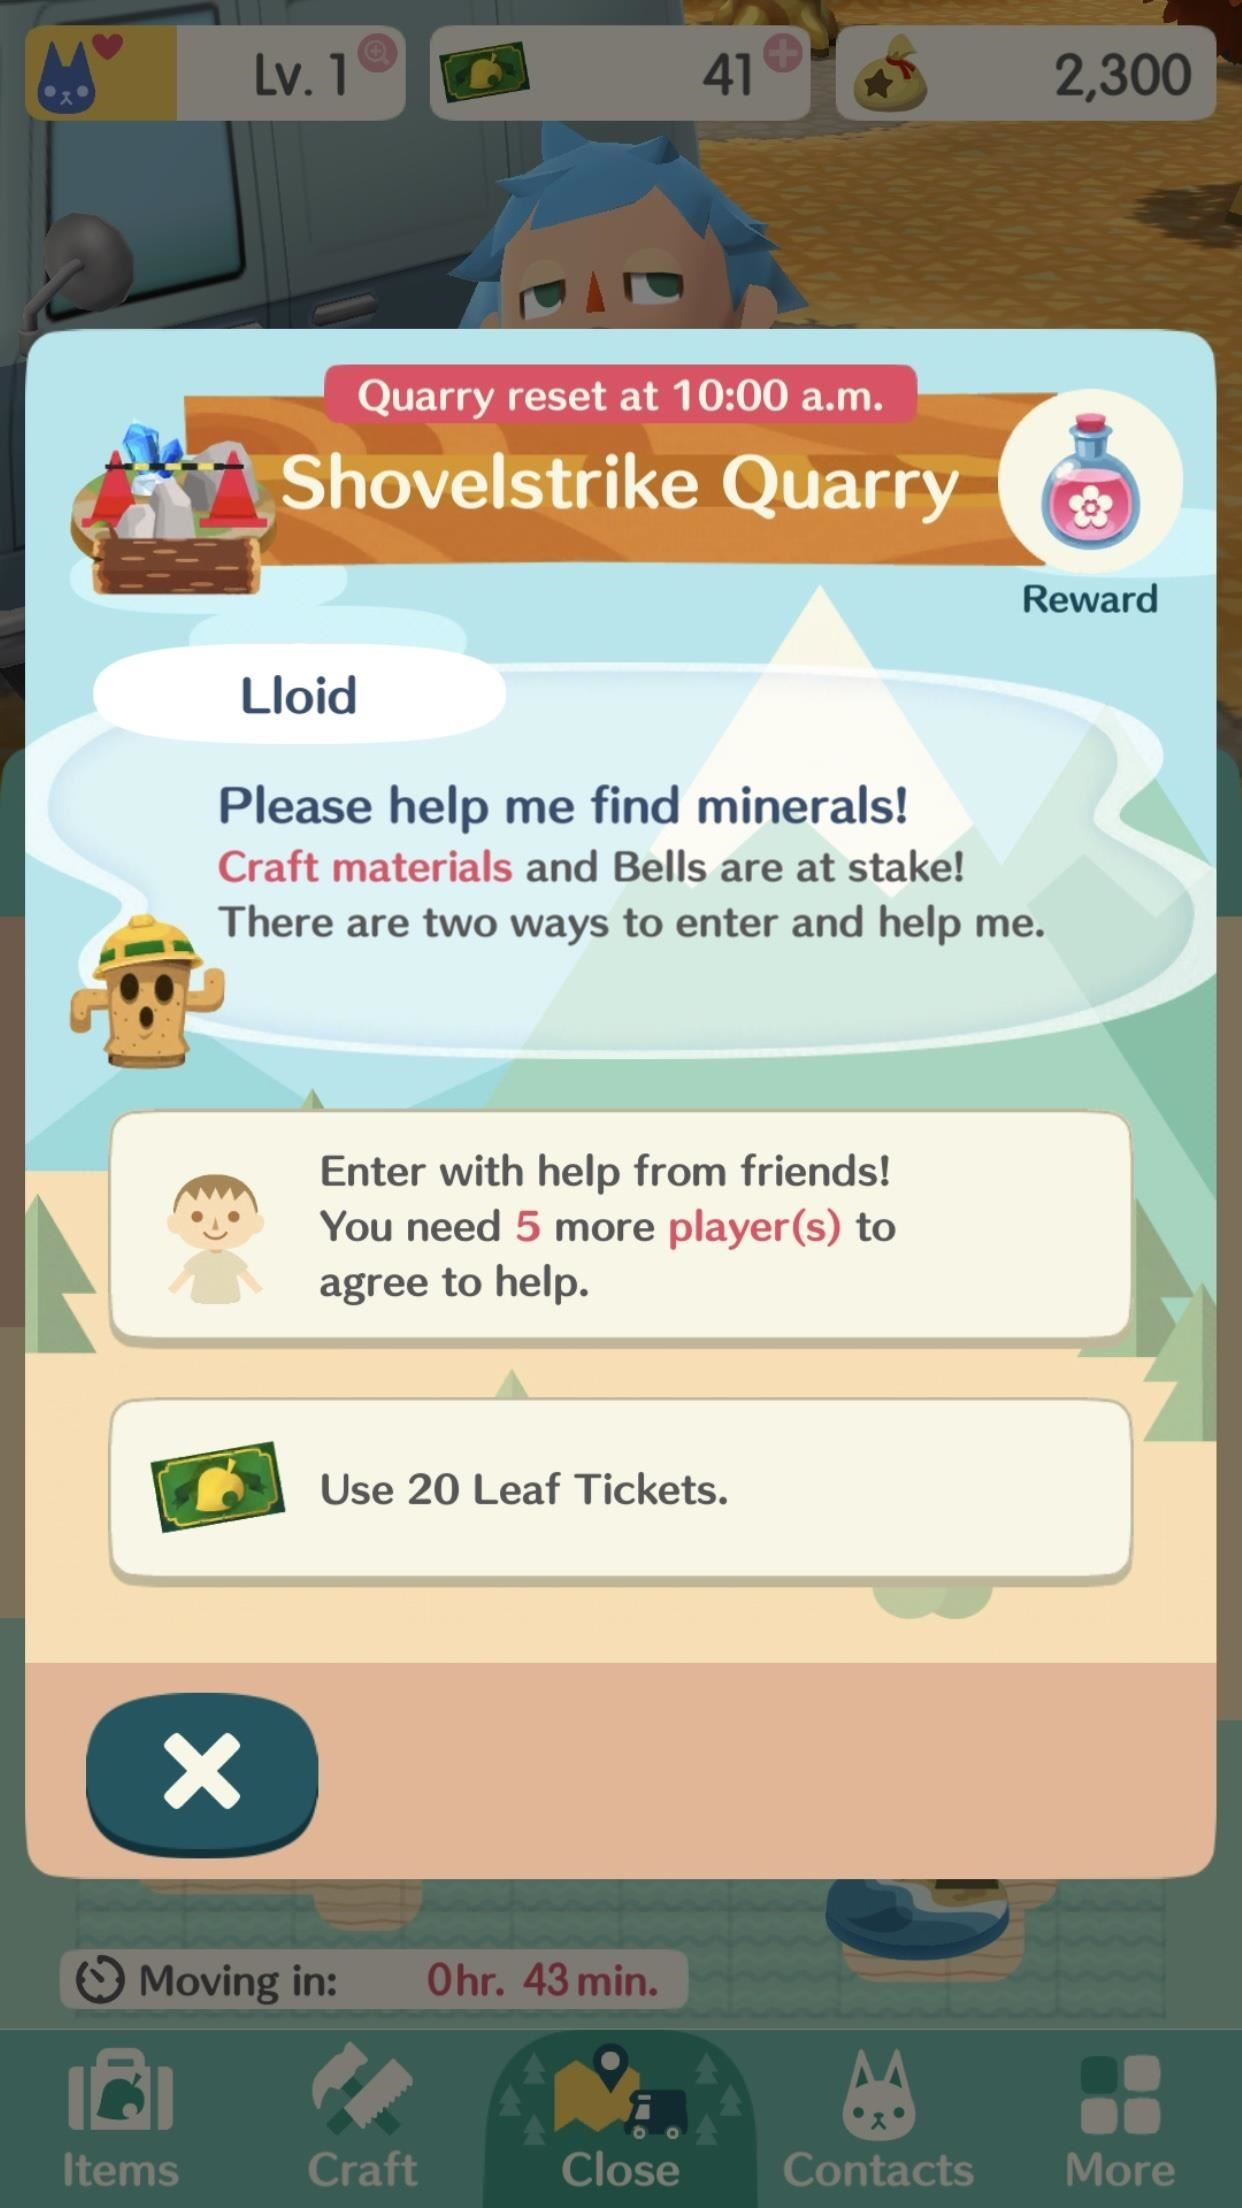 Pocket Camp 101: Making the Most of Other Players in Animal Crossing